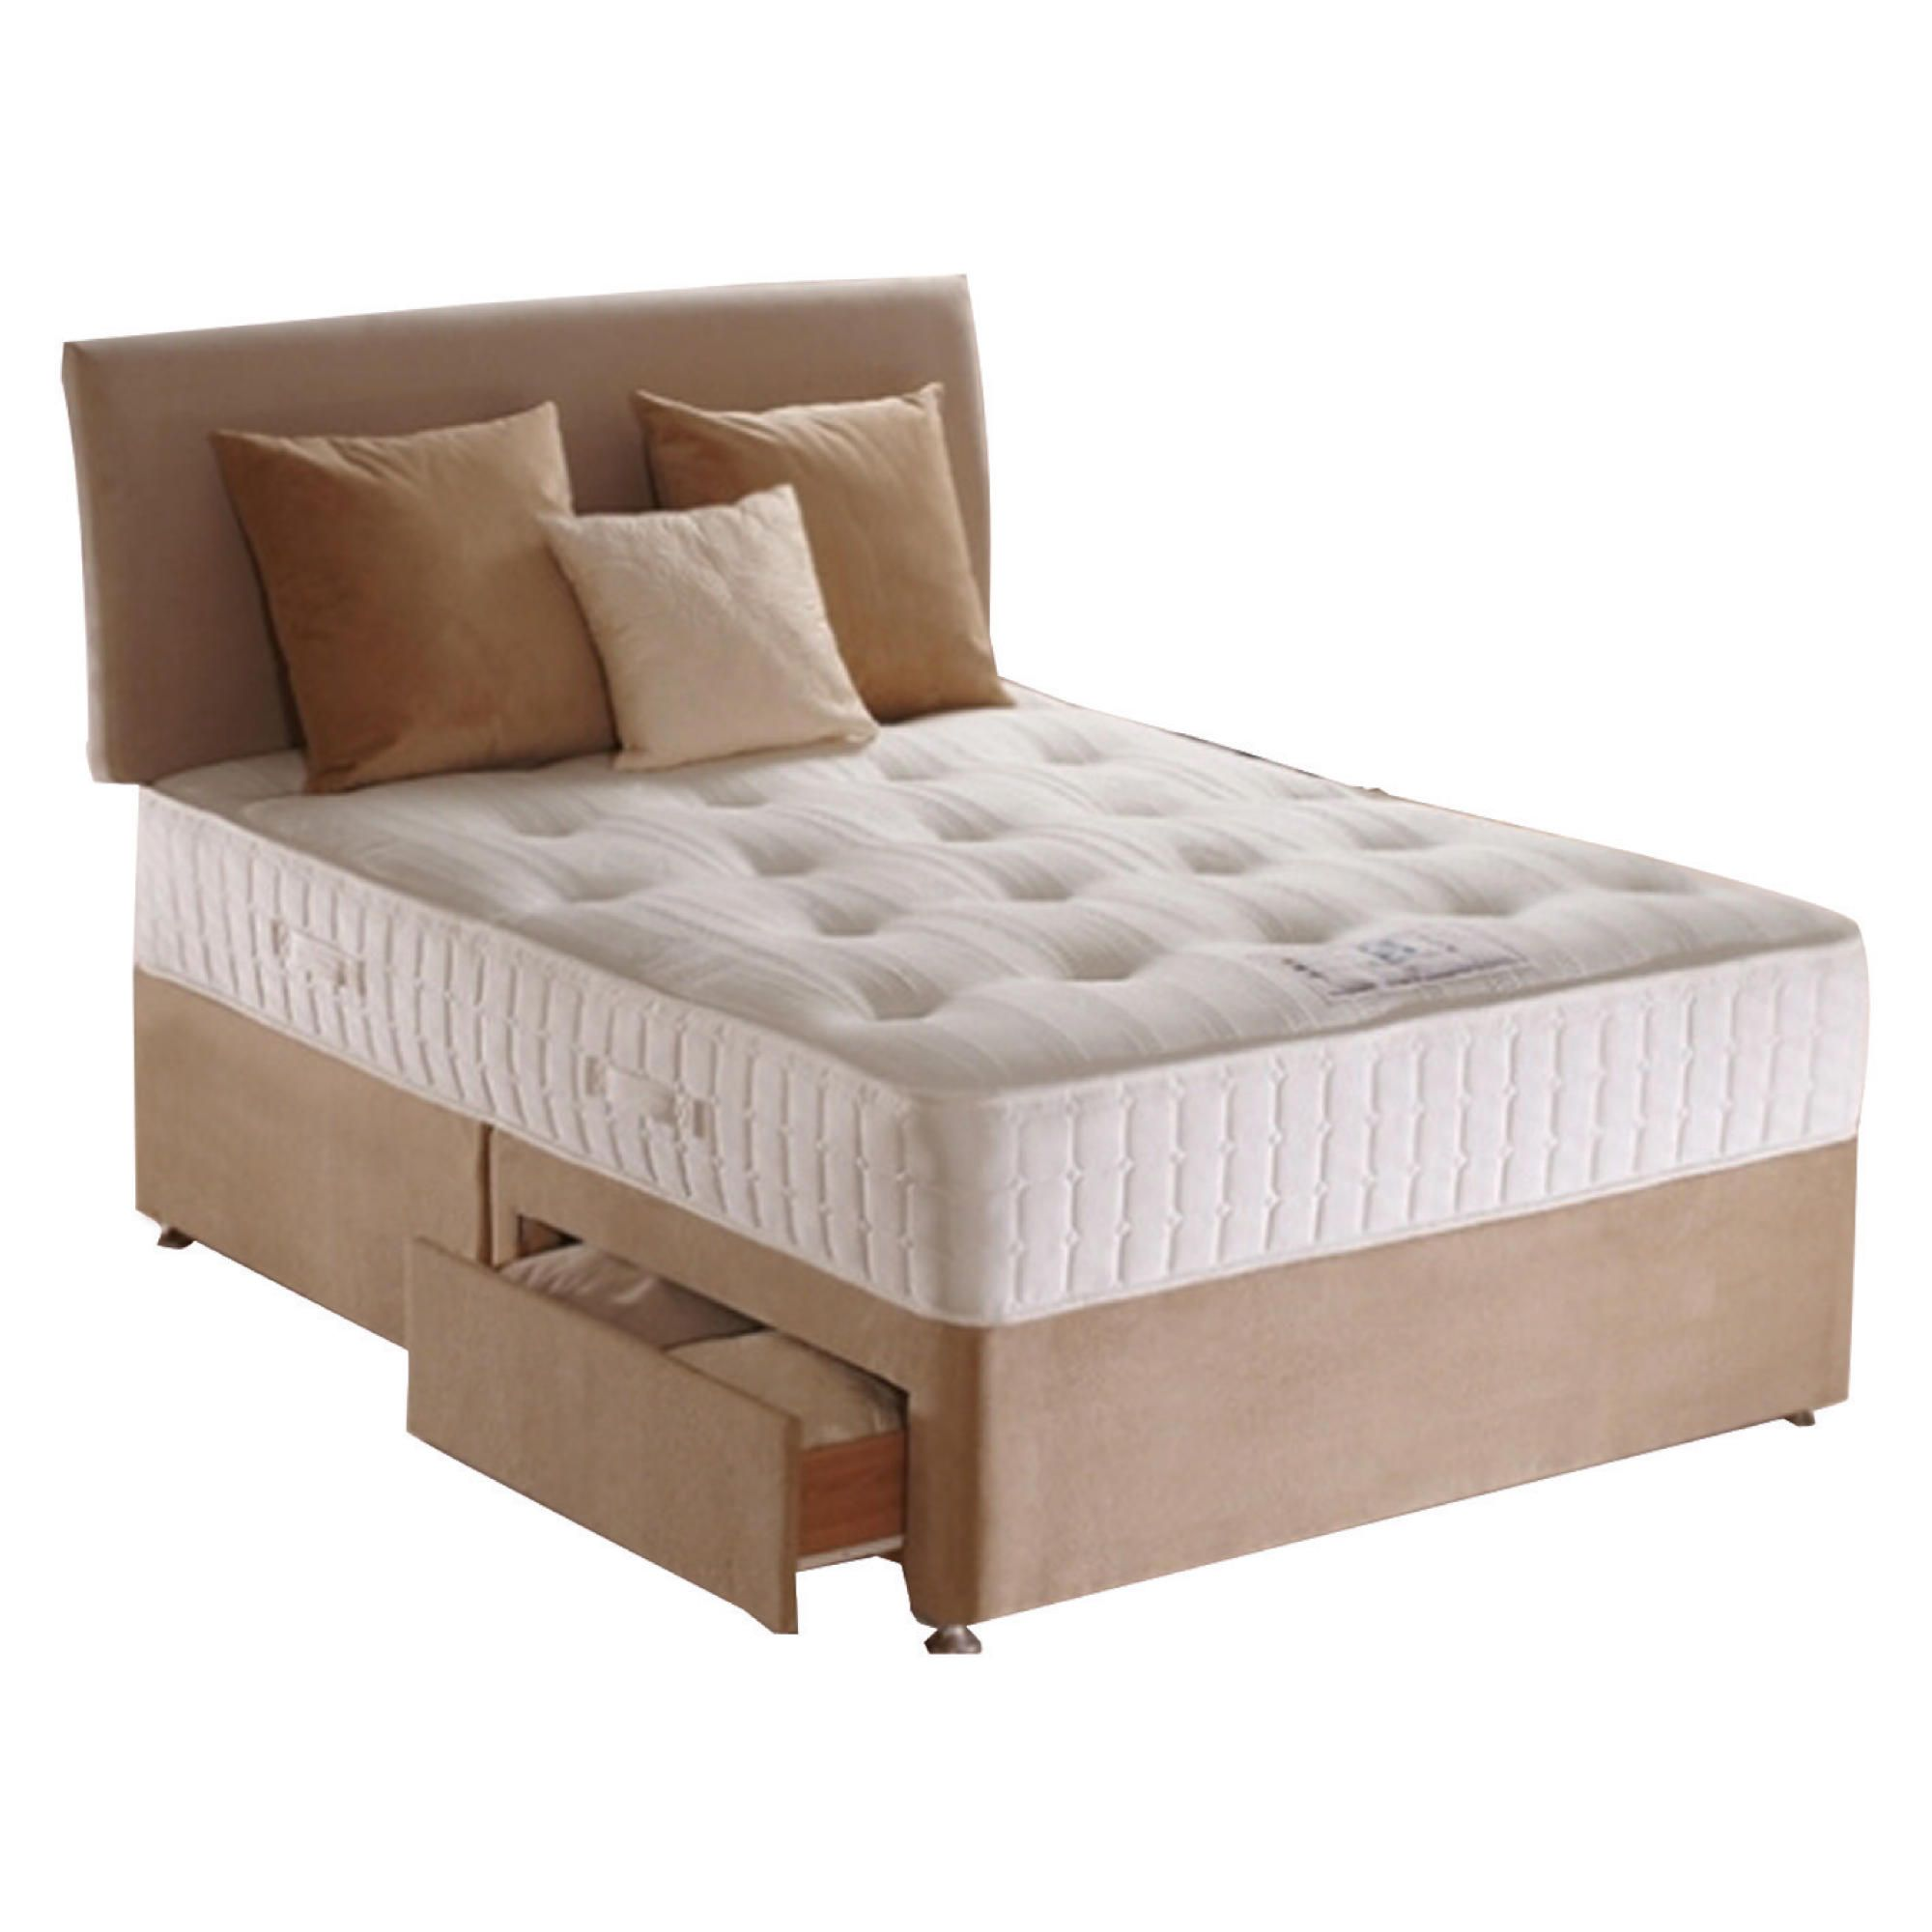 Sealy Purity Pocket Ortho Single 2 Drawer Divan Bed at Tesco Direct